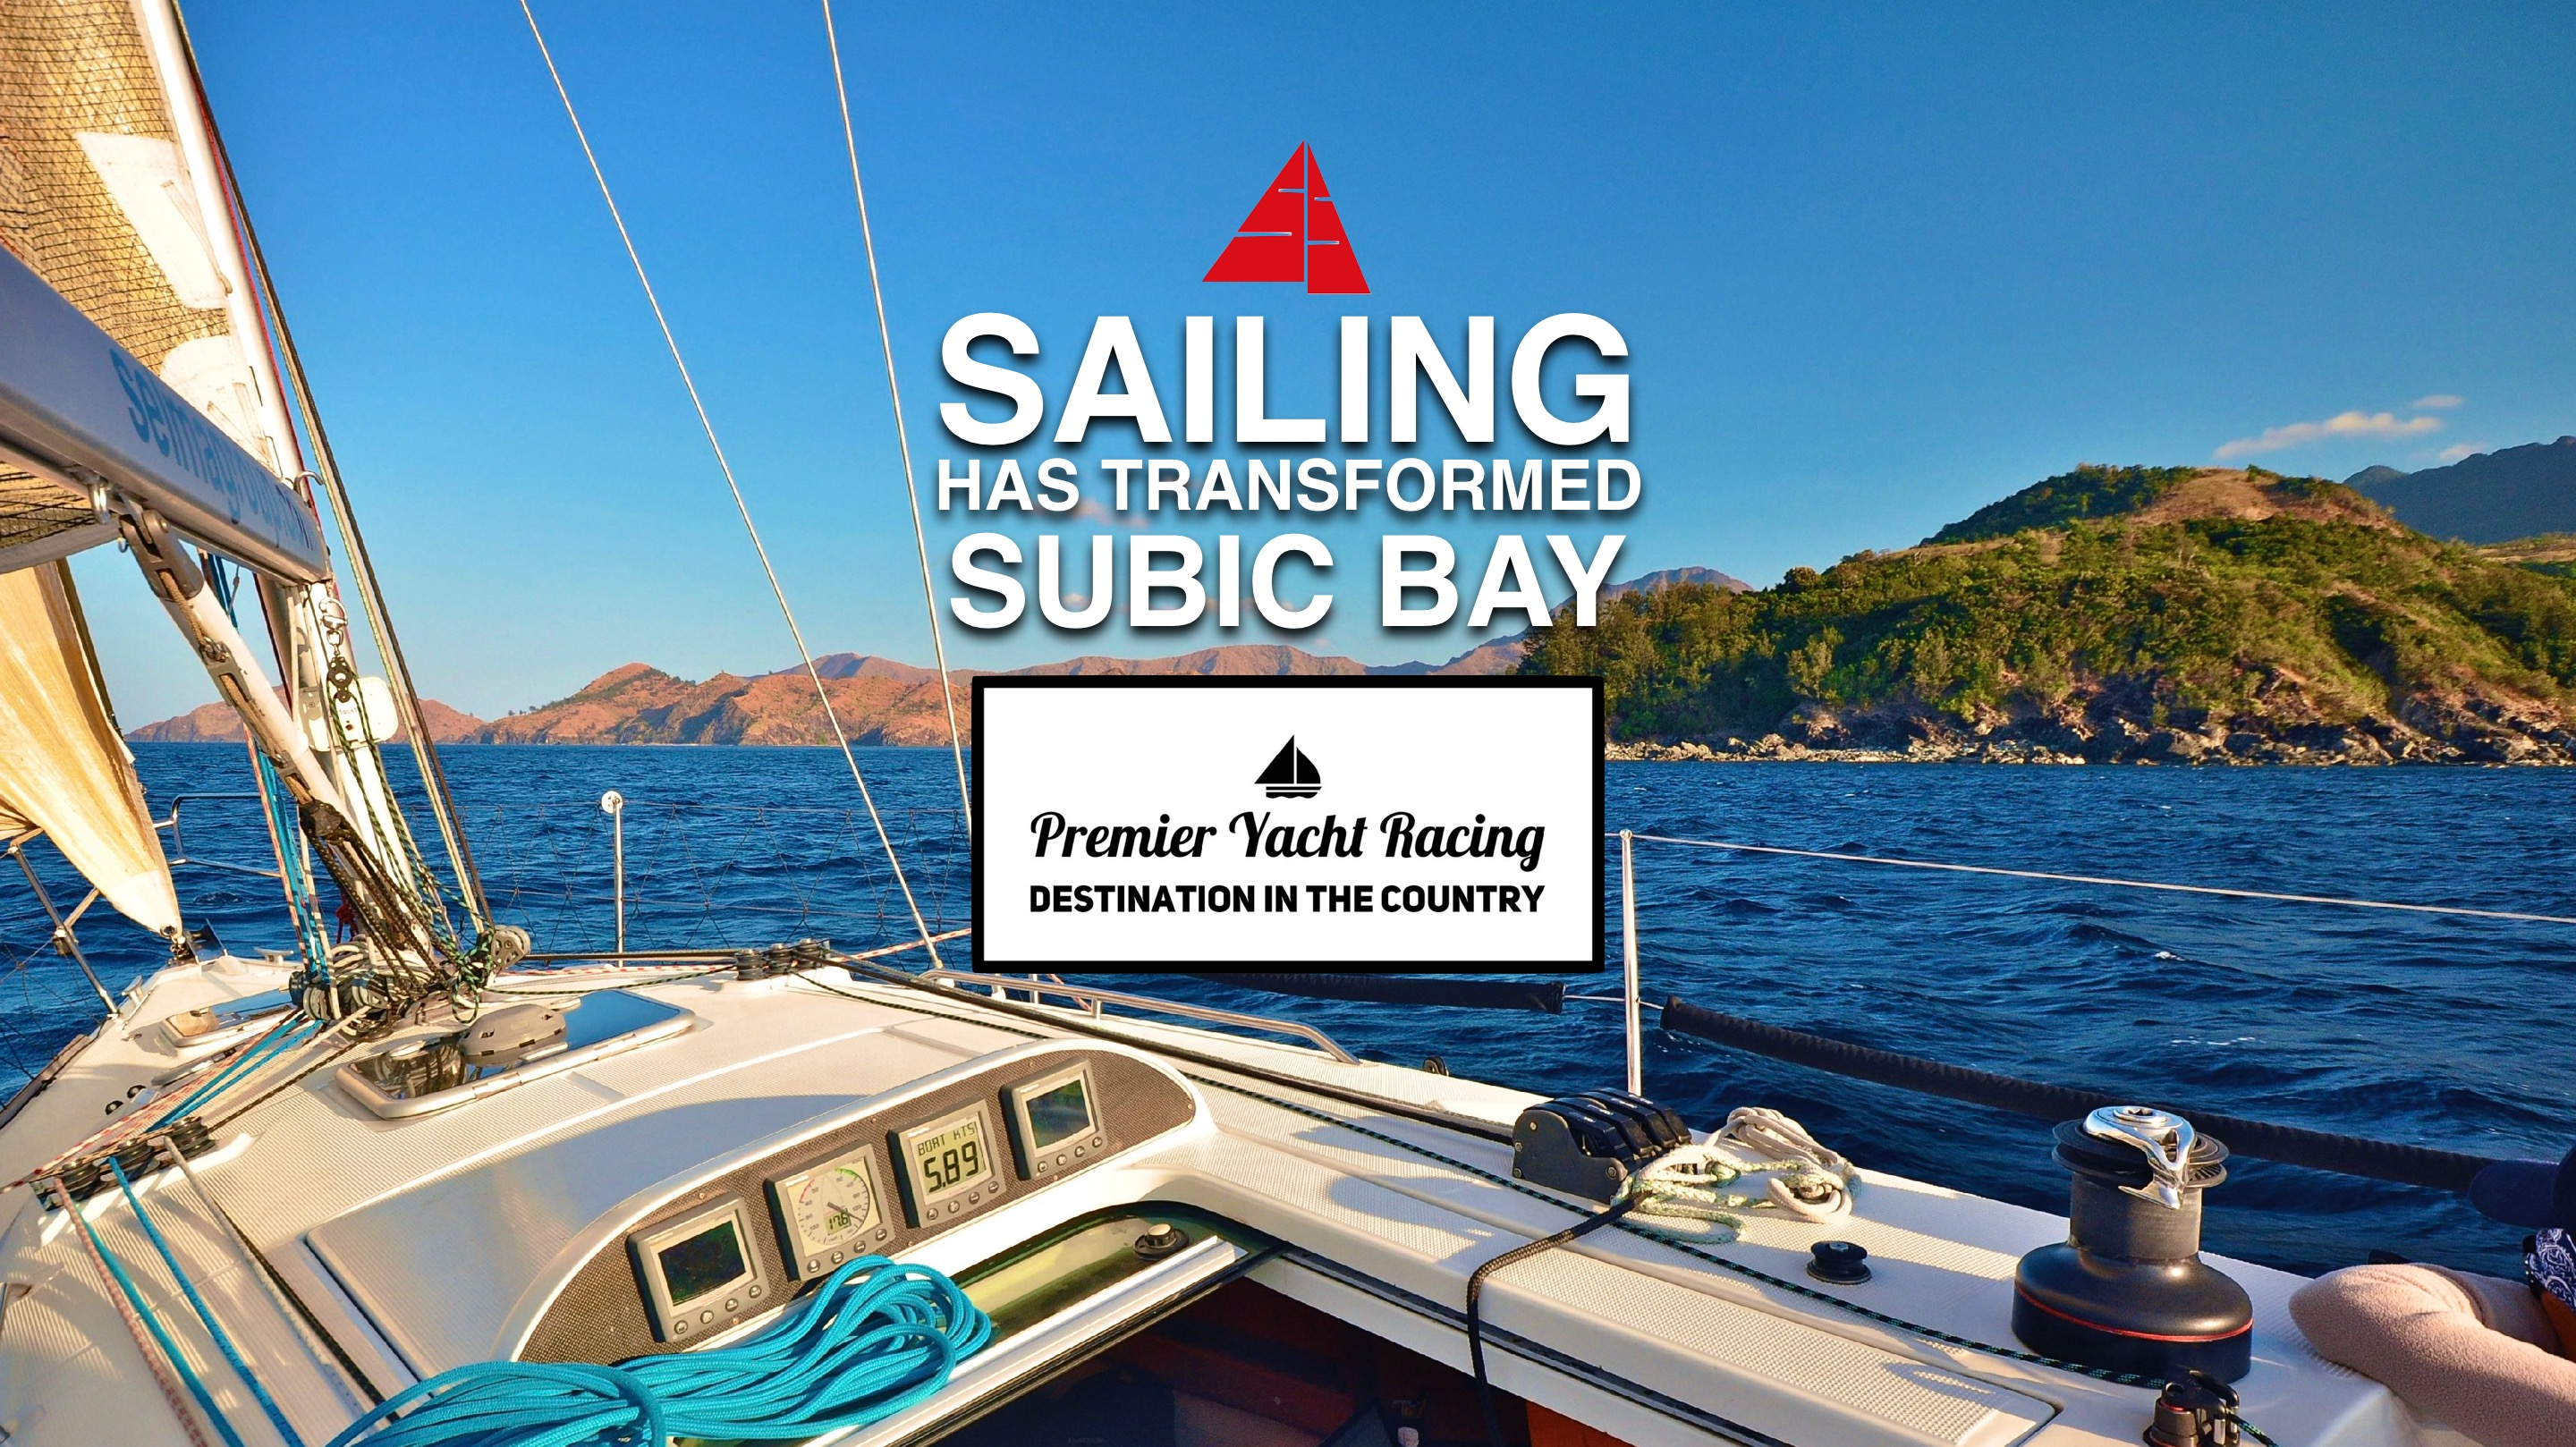 Subic Bay is the premier yachting and boating destination in the country.